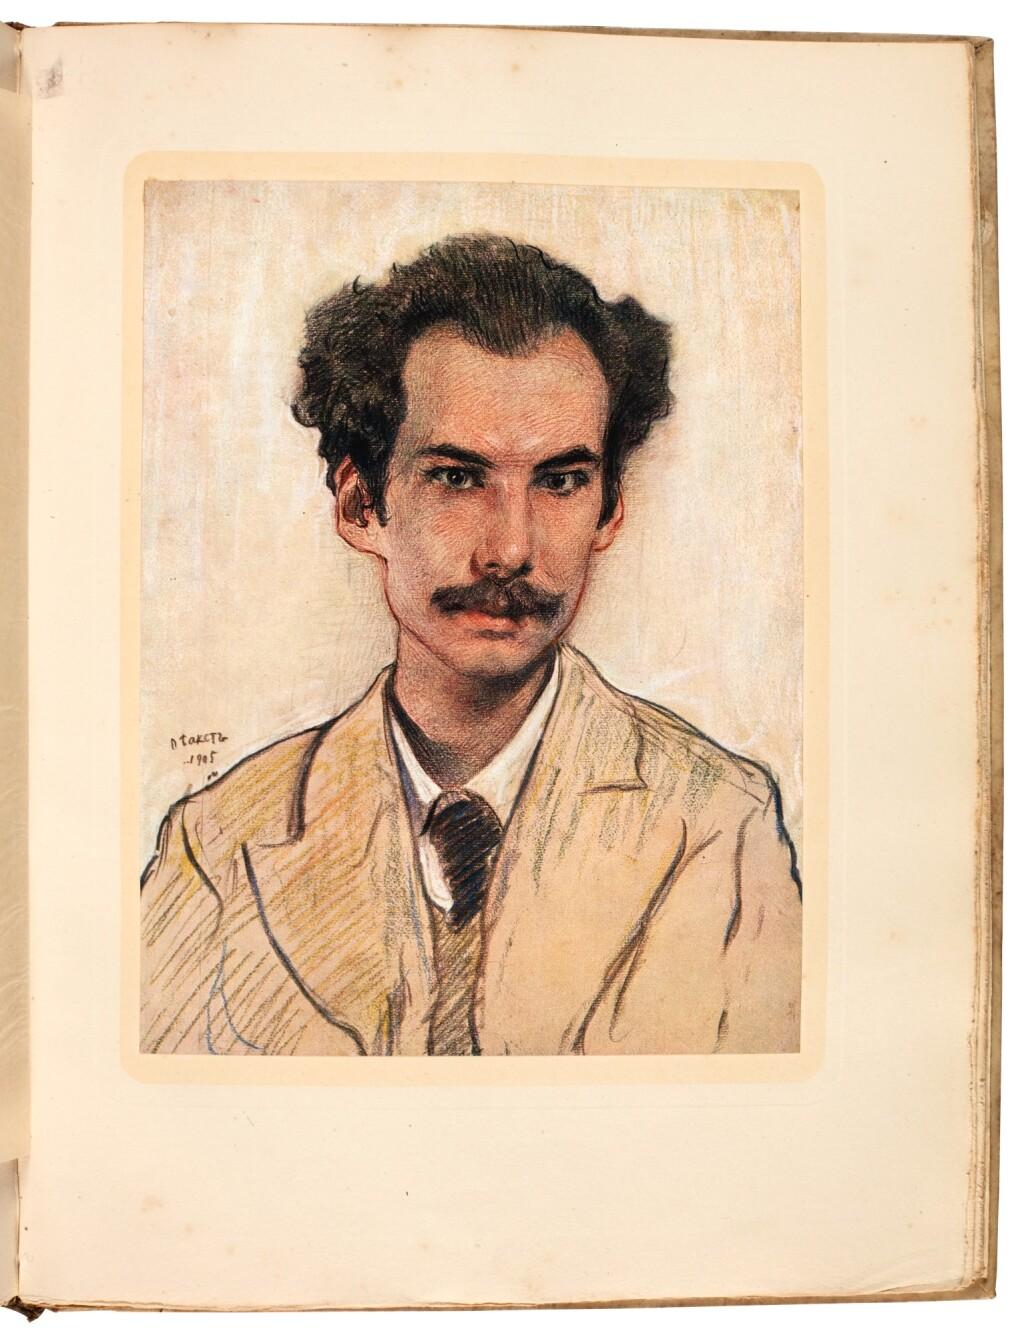 LEVINSON, ANDRÉ | BAKST, THE STORY OF THE ARTIST'S LIFE. LONDON: THE BAYARD PRESS, 1923